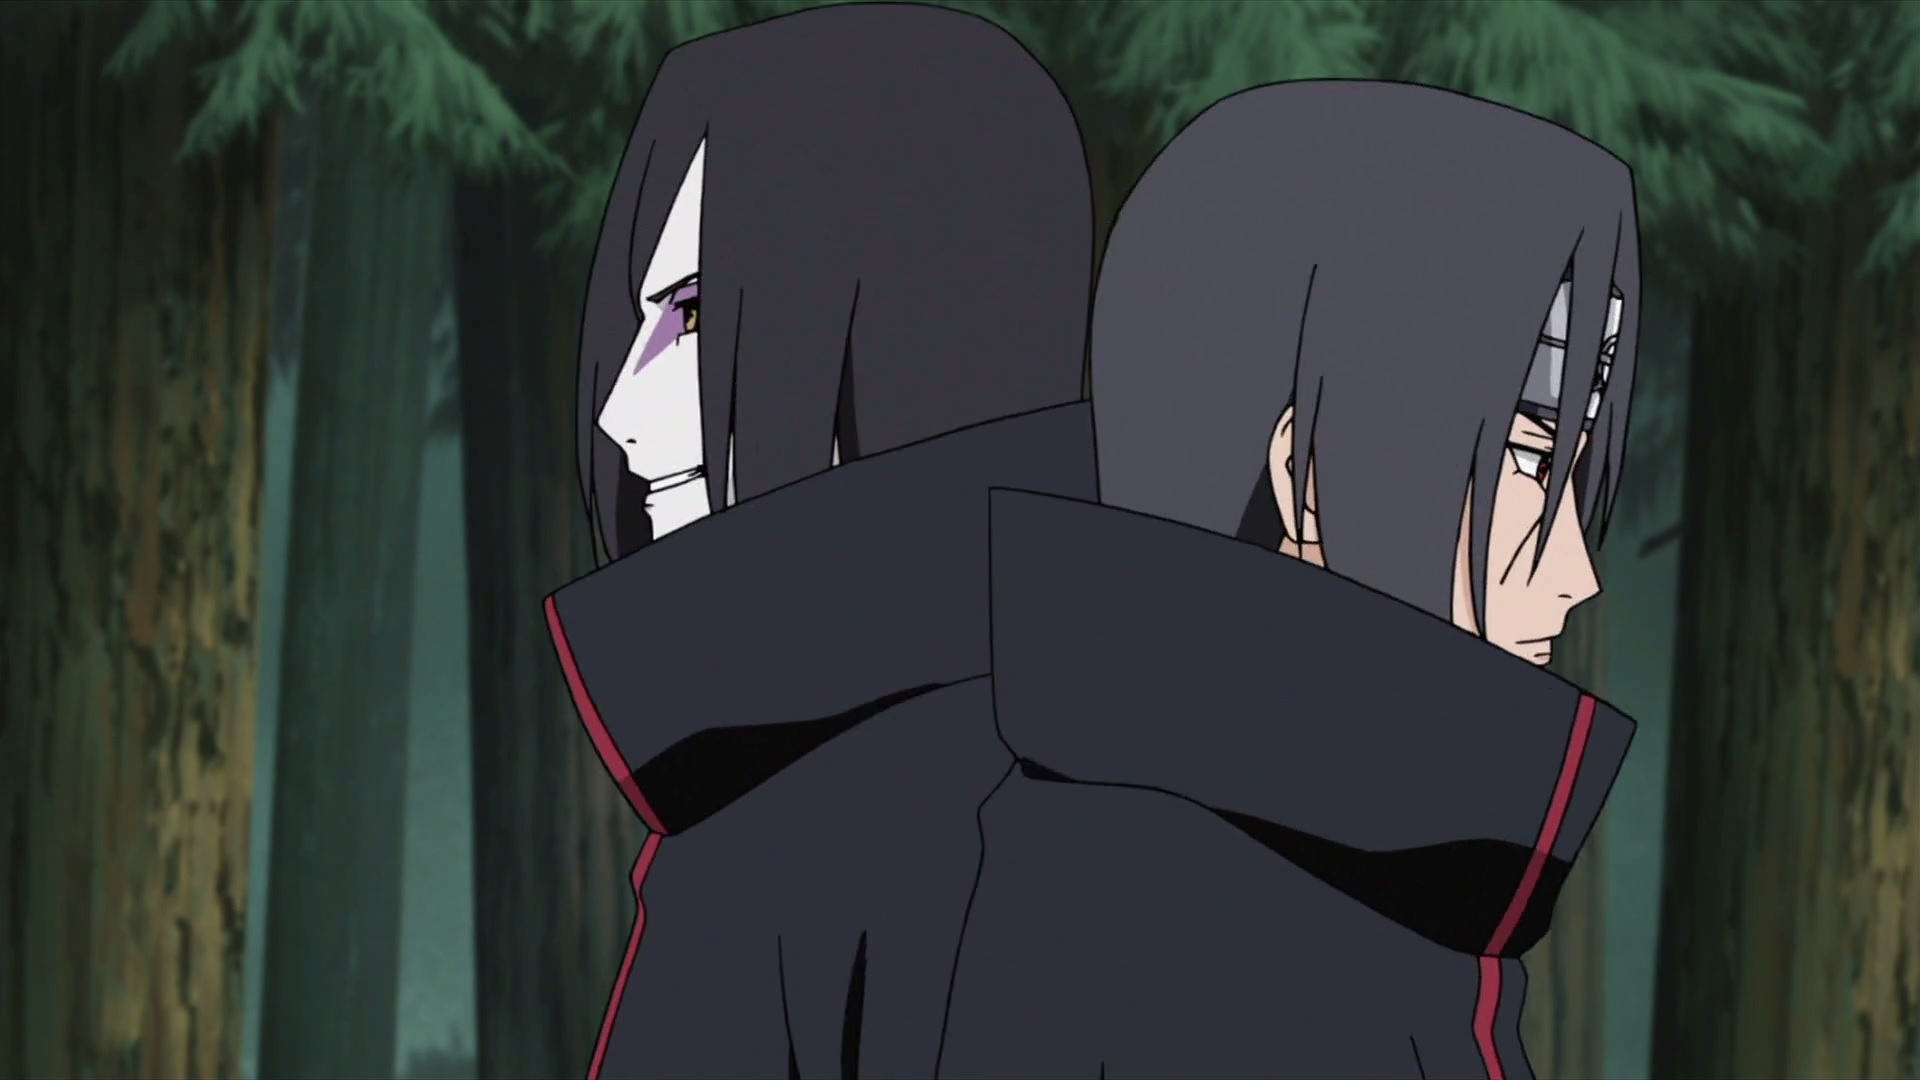 O pertubador clipe que o Cartoon network passou no adult swin. Itachi-and-orochimaru